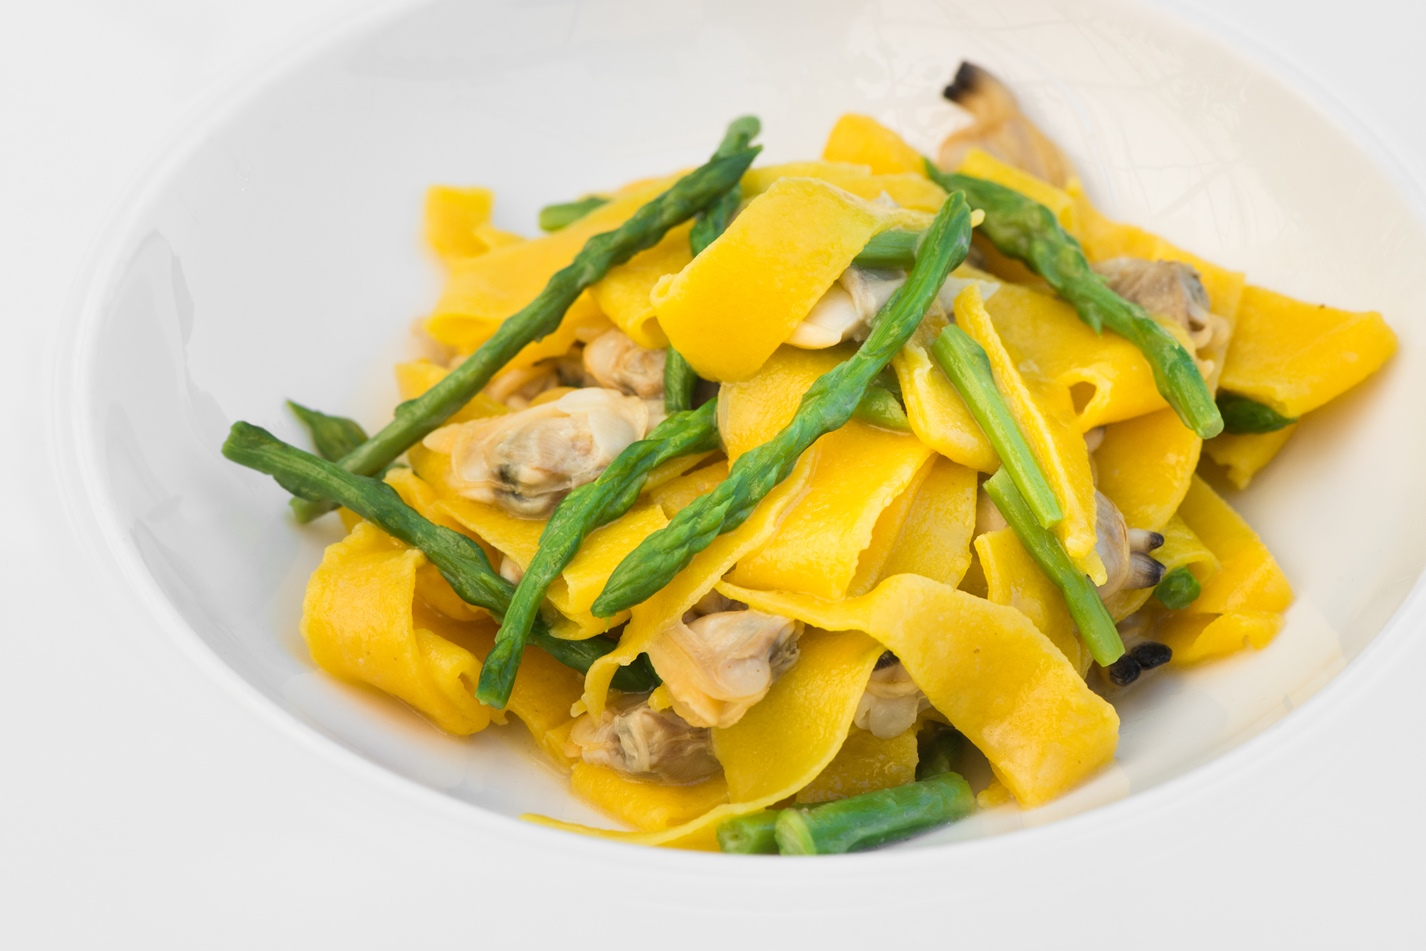 Maltagliati pasta with clams and wild asparagus